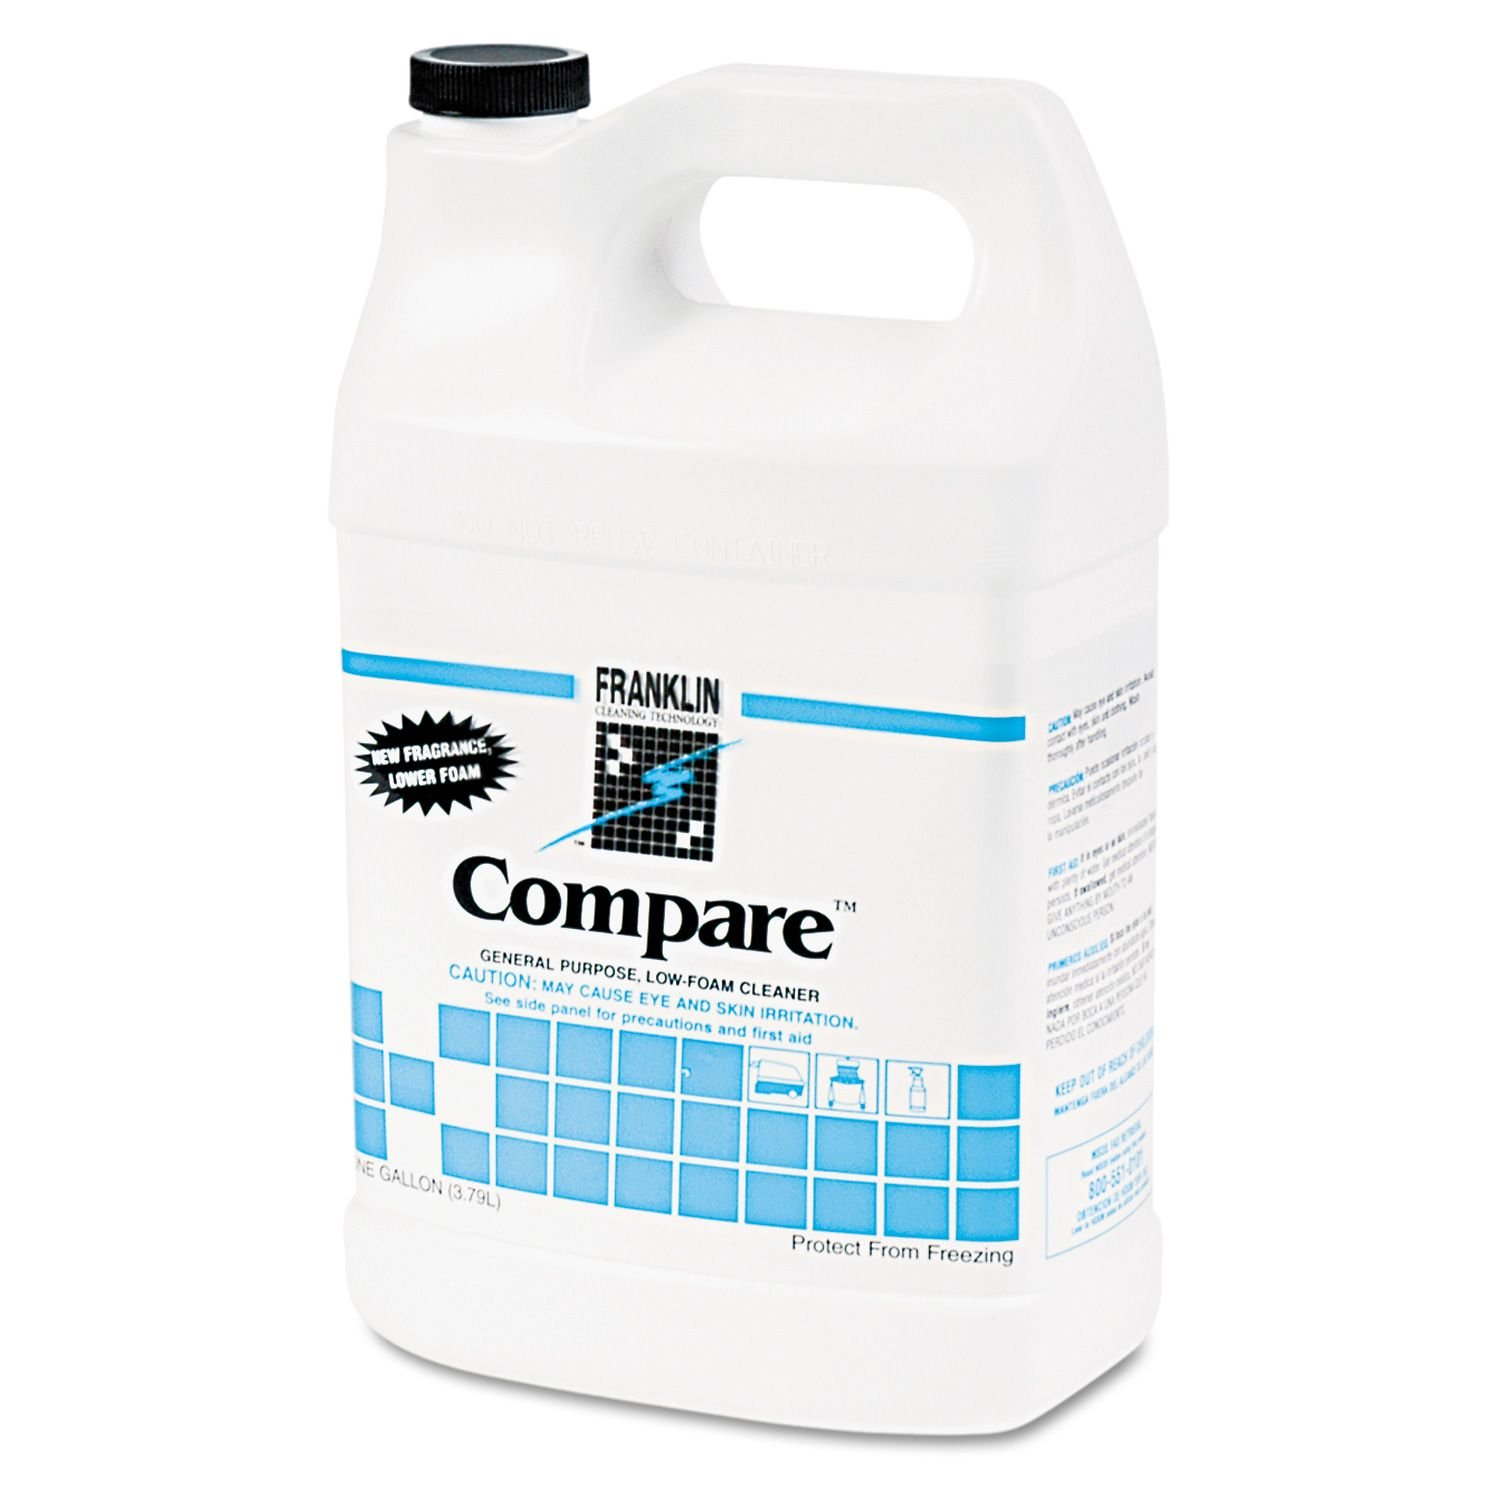 Franklin Cleaning Technology - Compare Floor Cleaner, 1gal Bottle - 4/Carton